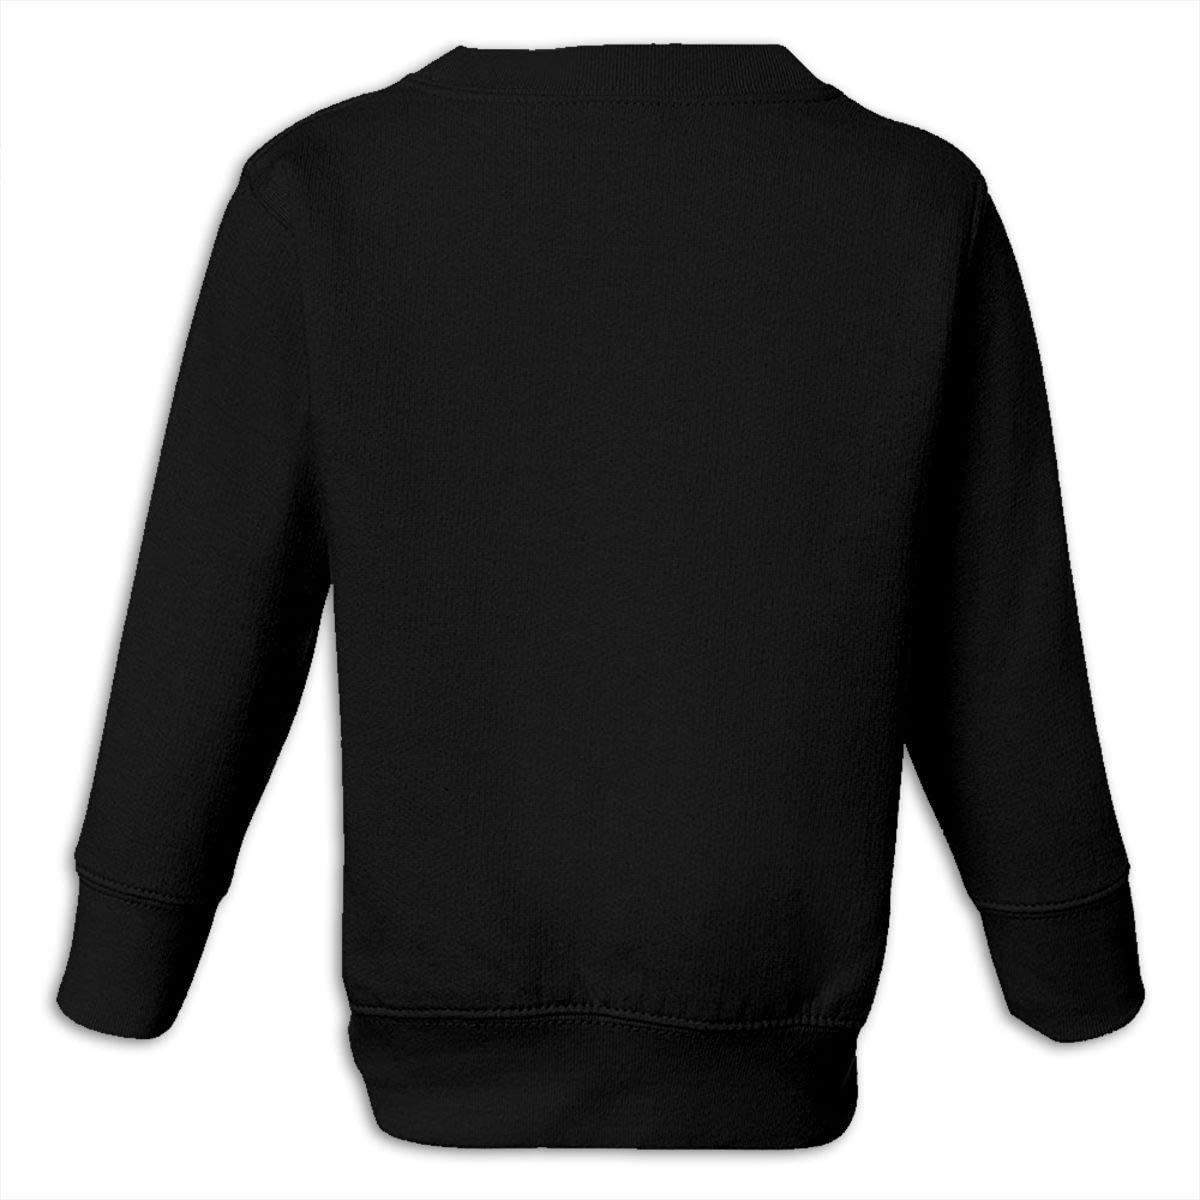 wudici Meh Boys Girls Pullover Sweaters Crewneck Sweatshirts Clothes for 2-6 Years Old Children